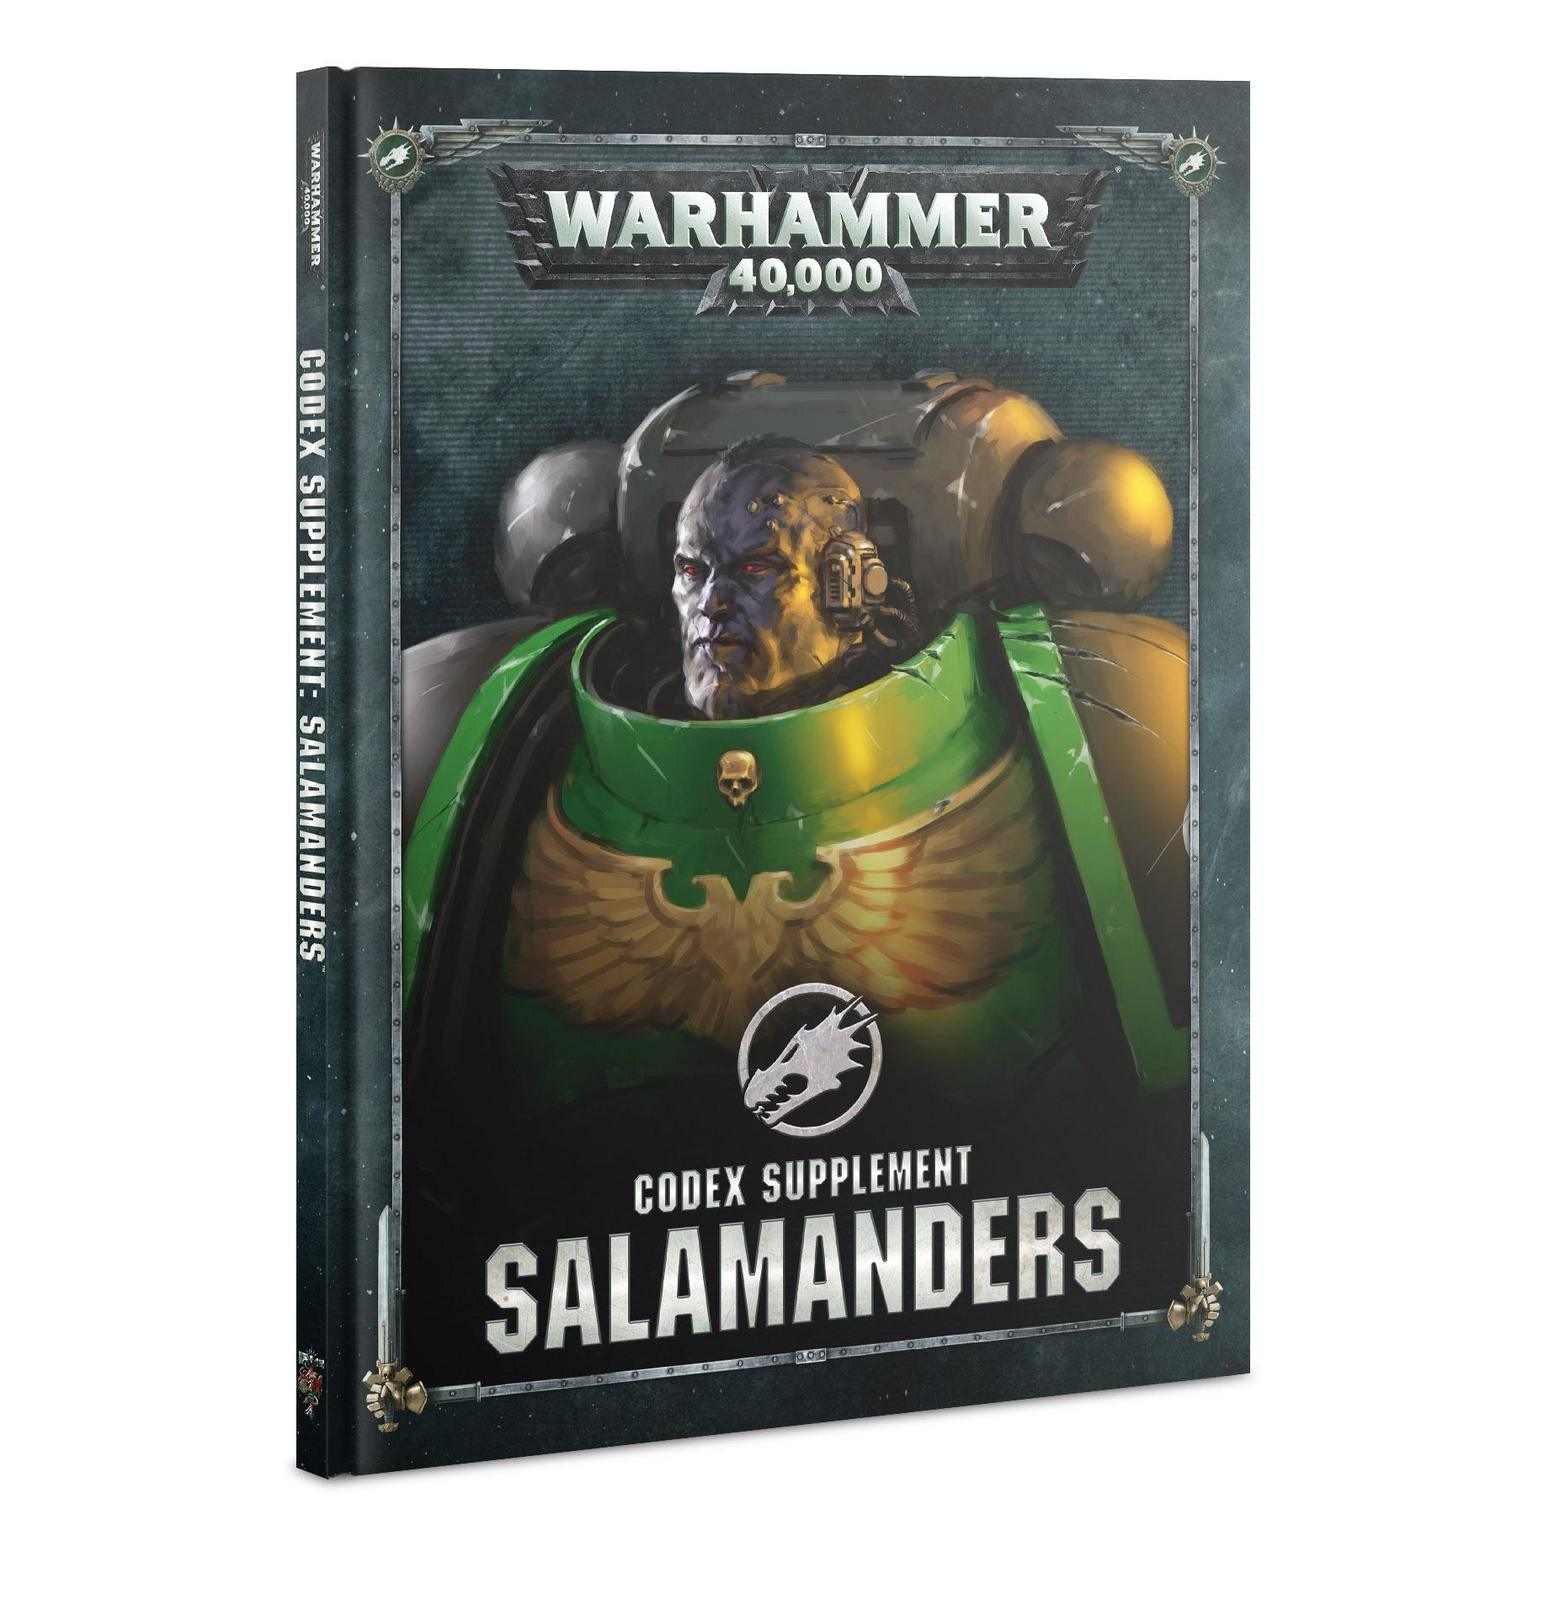 Warhammer 40,000 Codex Supplement: Salamanders image